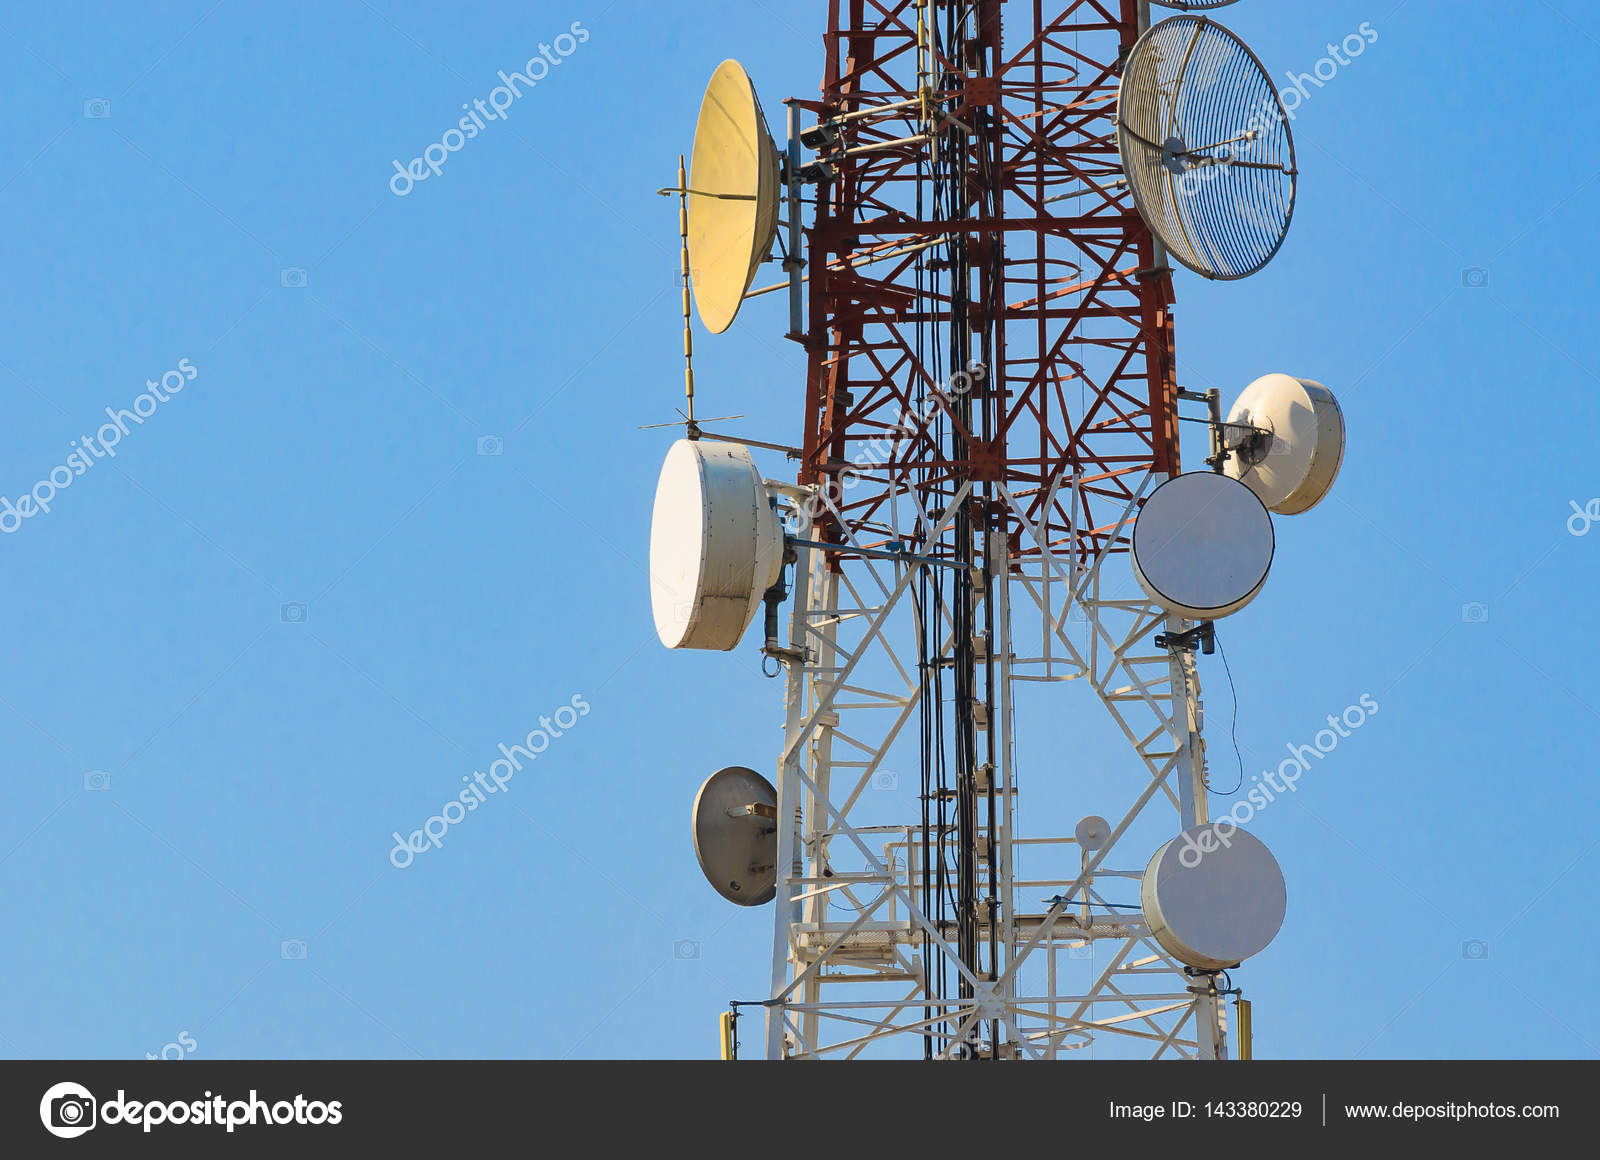 Mobile phone communication antenna tower with satellite dish